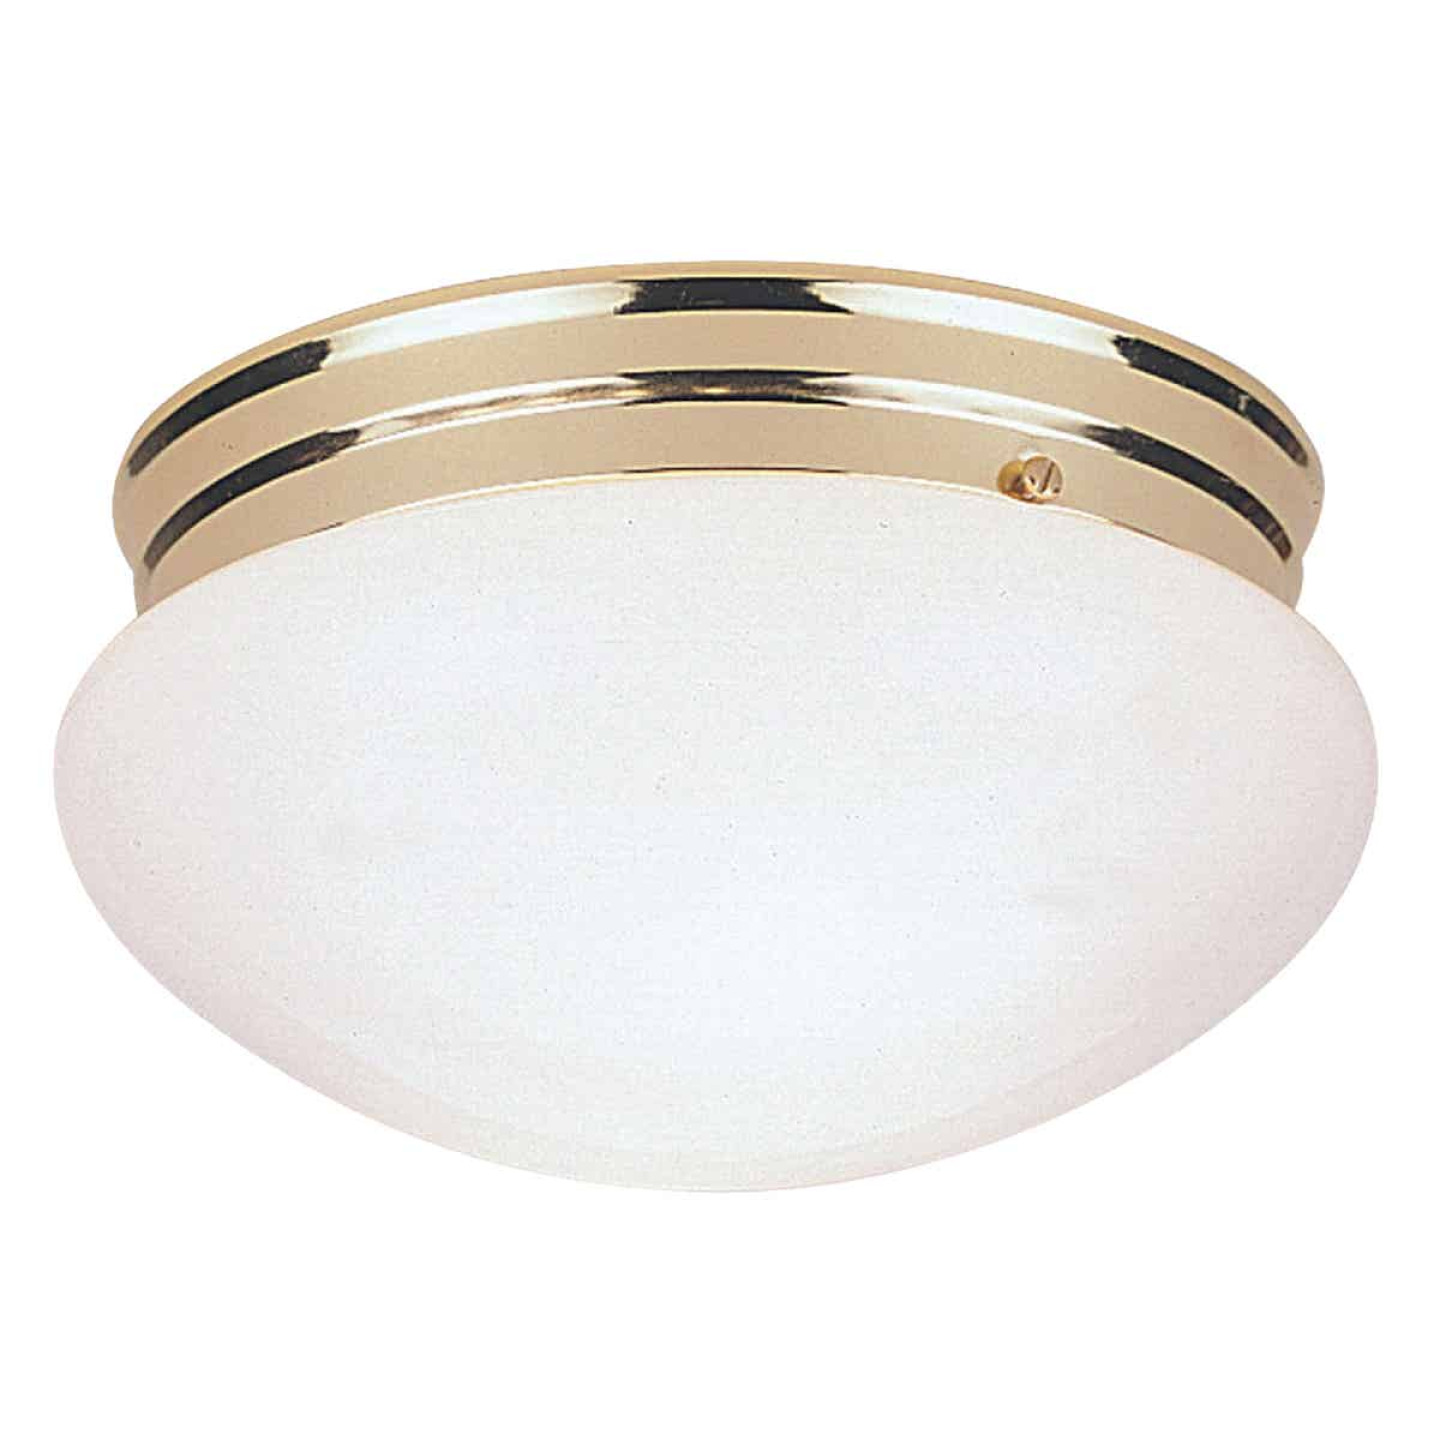 Home Impressions 7-1/2 In. Polished Brass Incandescent Flush Mount Ceiling Light Fixture Image 1